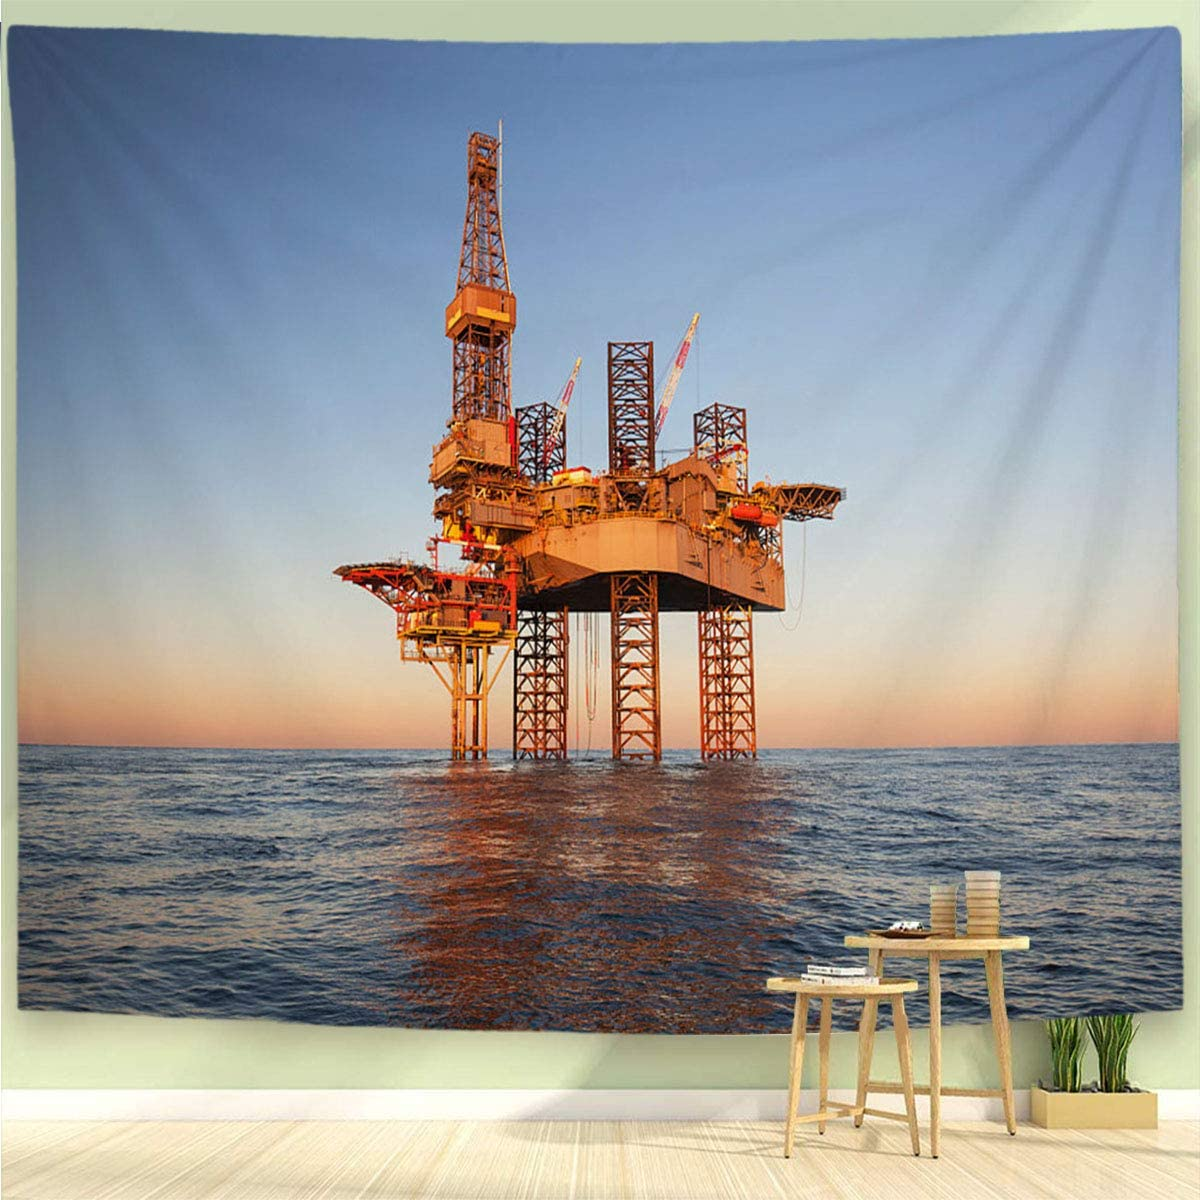 BEIVIVI Nature Tapestry Wall Tapestry Wall Hanging an Offshore Oil Drilling Rig Wall Tapestry with Art Nature Home Decorations,6050in